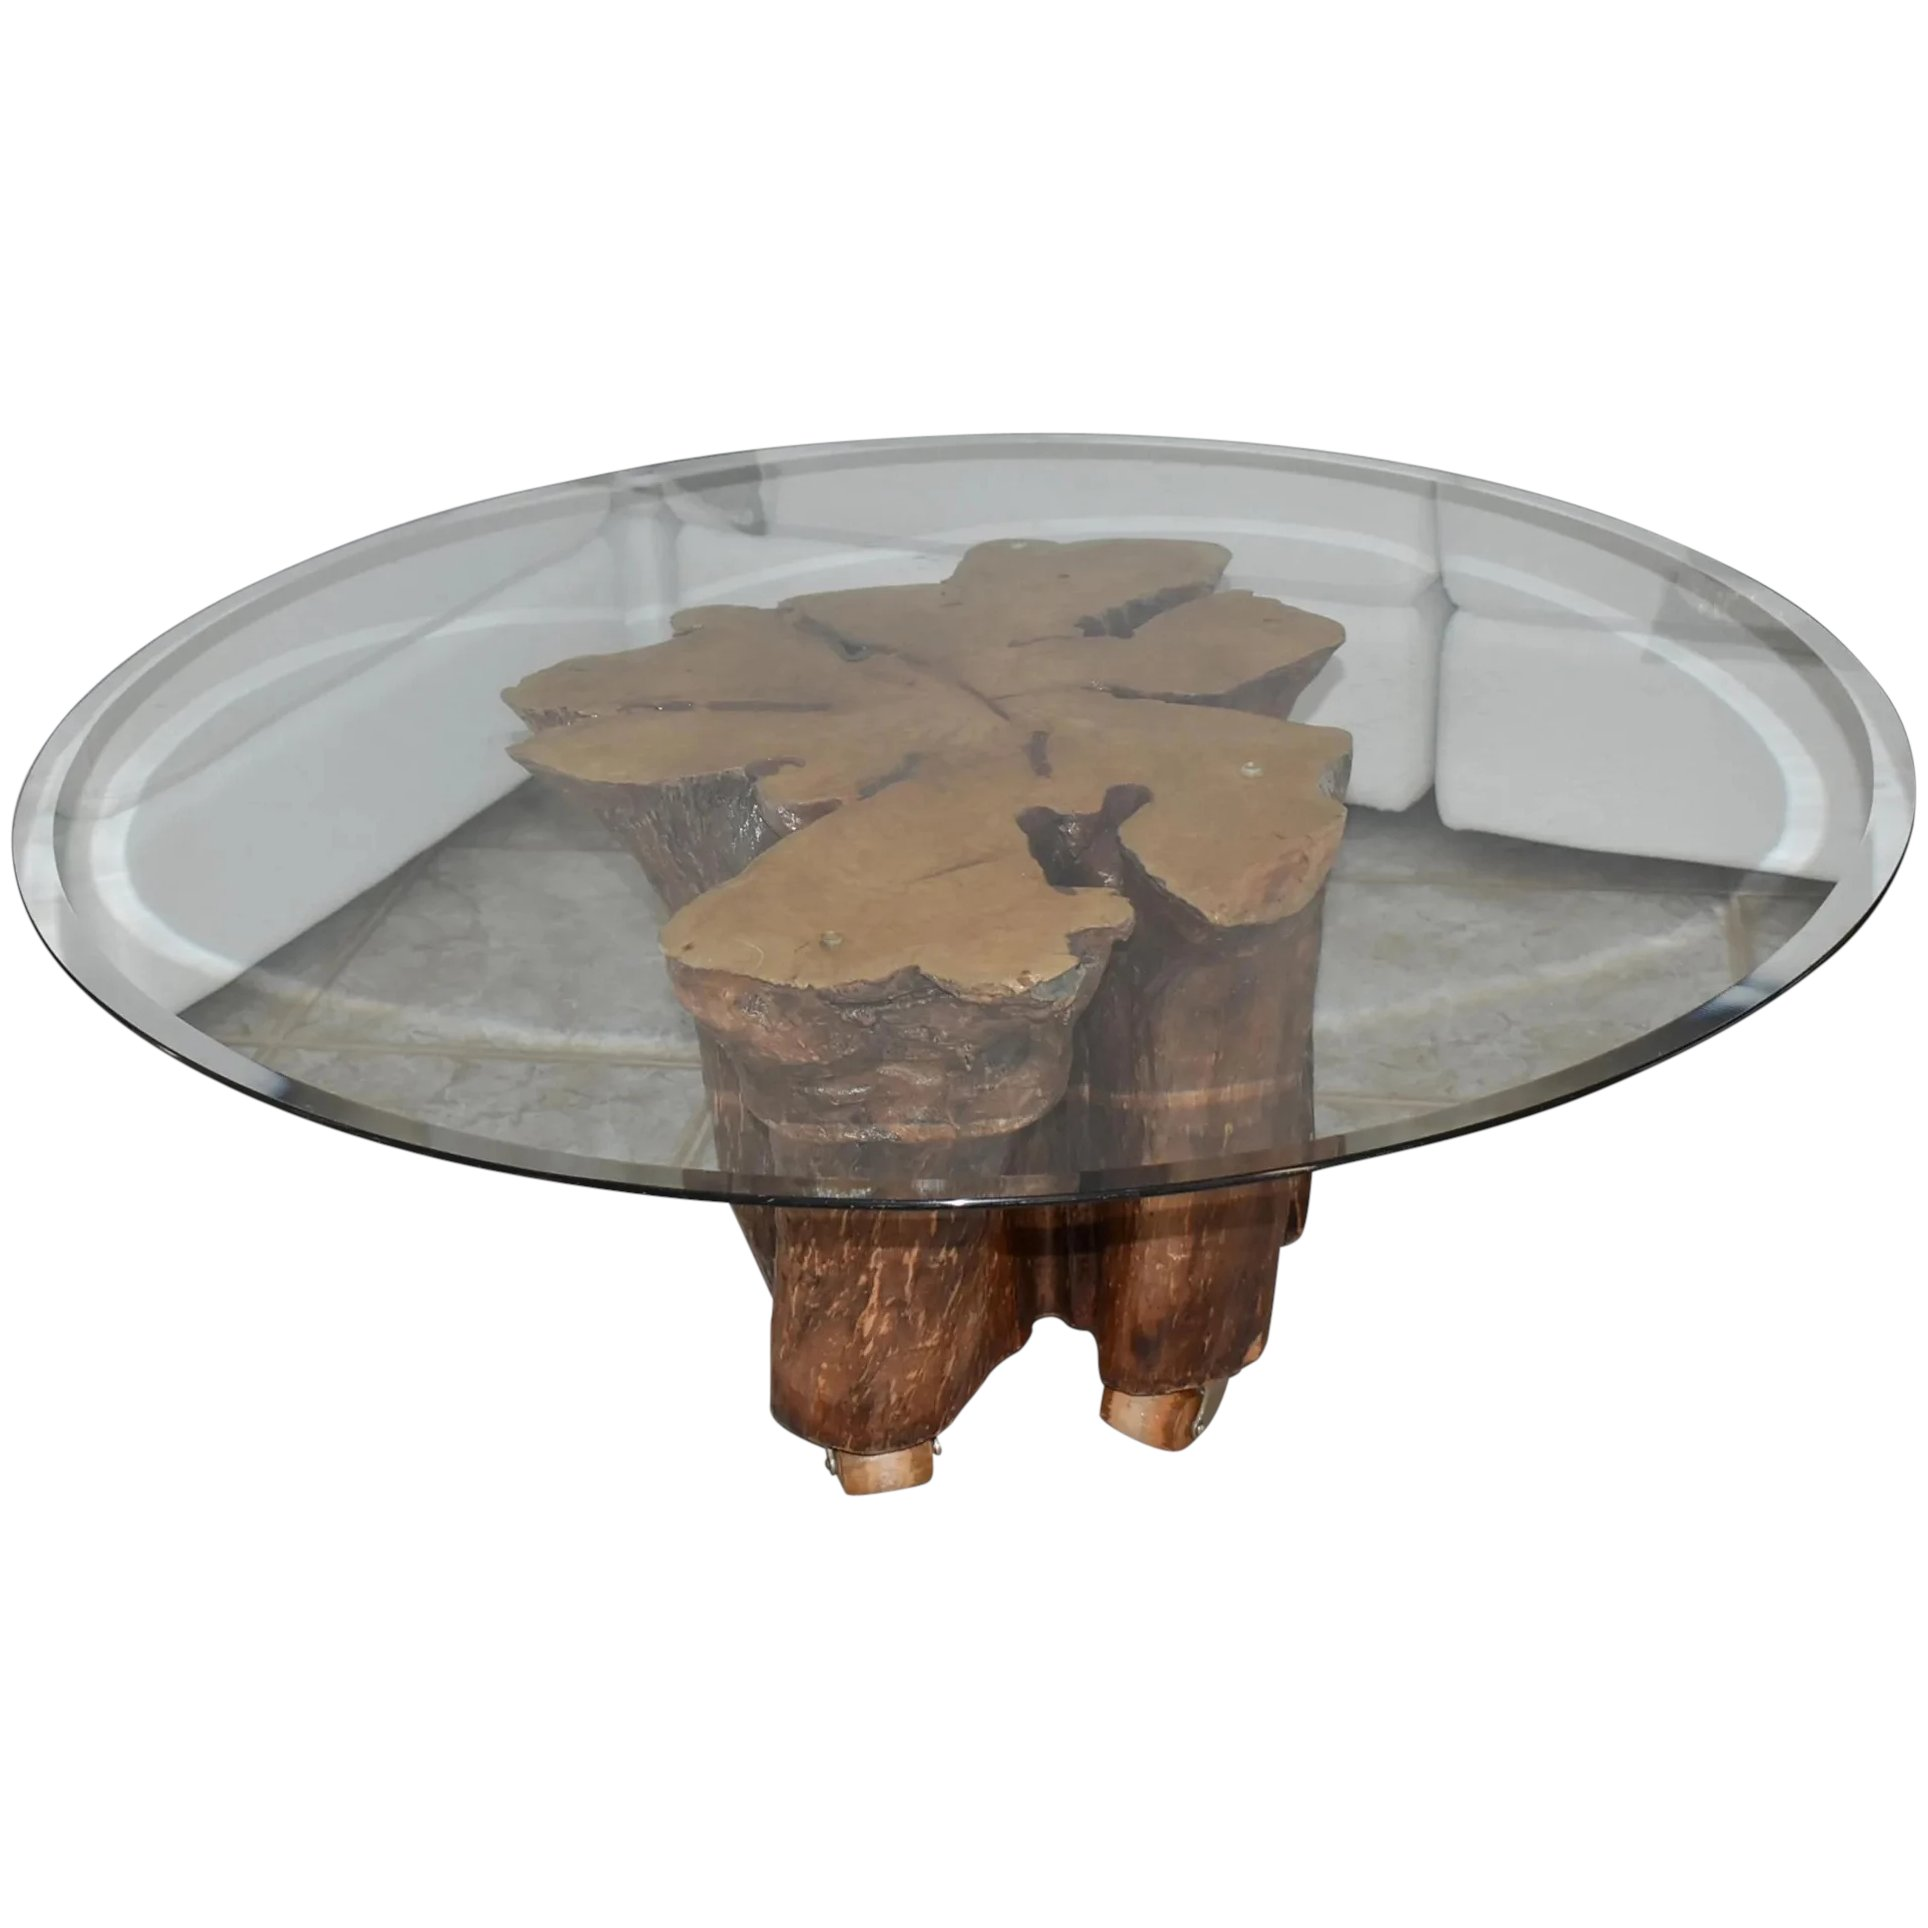 cypress tree stump coffee table w beveled glass top naturally sculpted base